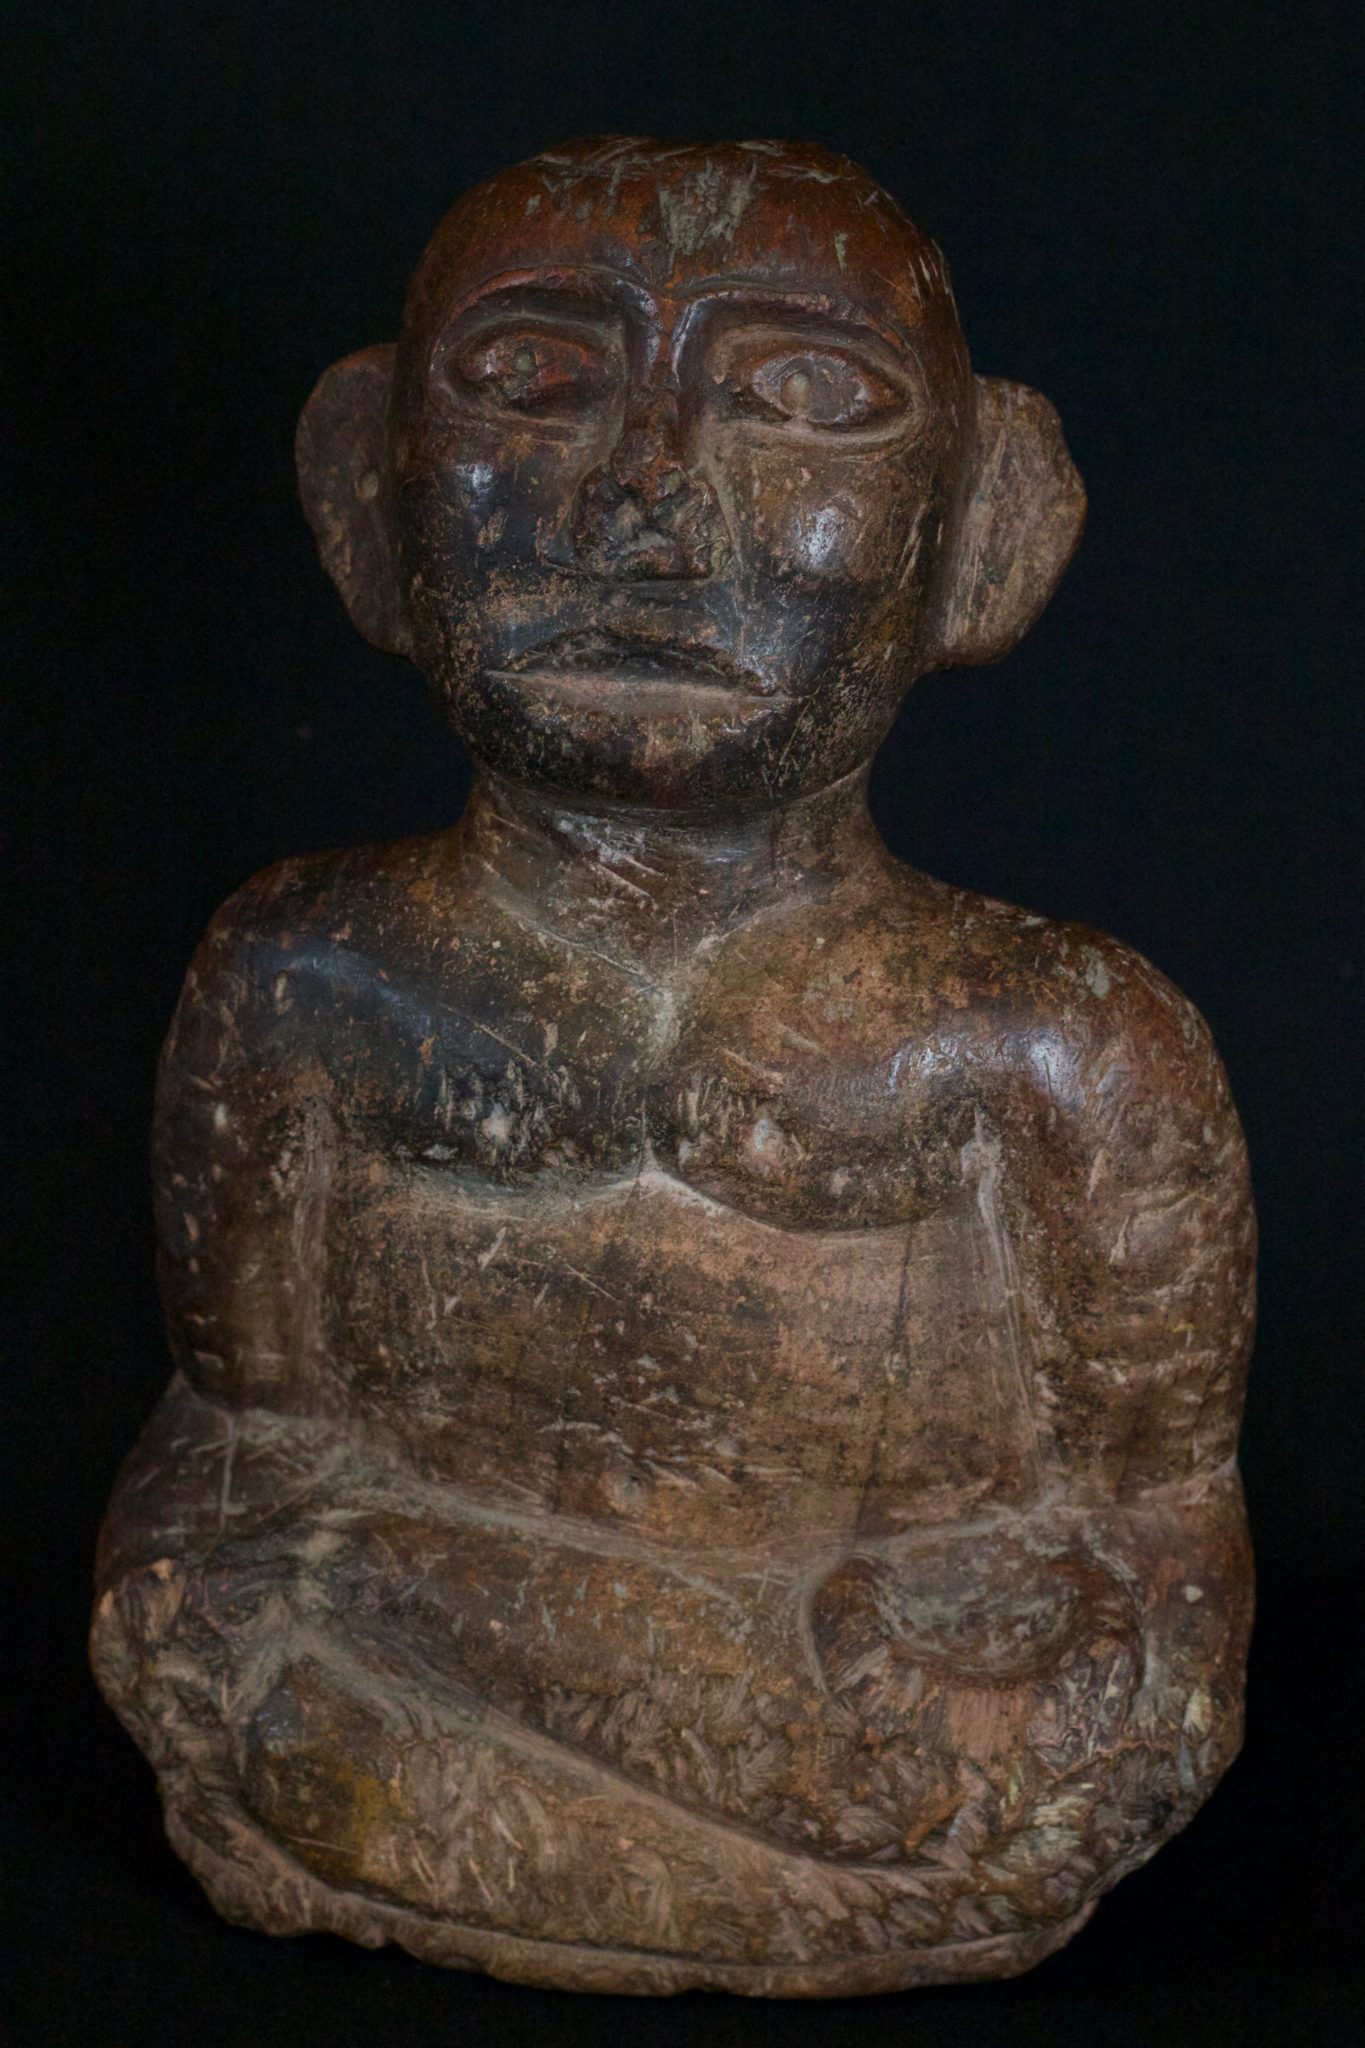 "'Pangulubalang' Shaman Figure (exceptionally rare), Sumatra, Indonesia, Batak, Simalungun, Mid 16th to 17th c, Stone, with patina They are specifically made by the shaman and embodied with a powerful spirit slave. They are used in conjunction with a magical substance, pupuk - a magical substance which is the embodiment of earthly suffering, destruction, hate and anger - which required special ingredients and a long and intricate preparation ritual. The purpose of this was to imbue the statue with the power to ward off evil spirits, to prevent disasters and as a dynamic healing tool. For healing, small bits of the statue itself were chipped off of corresponding body parts and made into a potion. 12"" x 7 ¾"" x 3 ½"", Price on request"